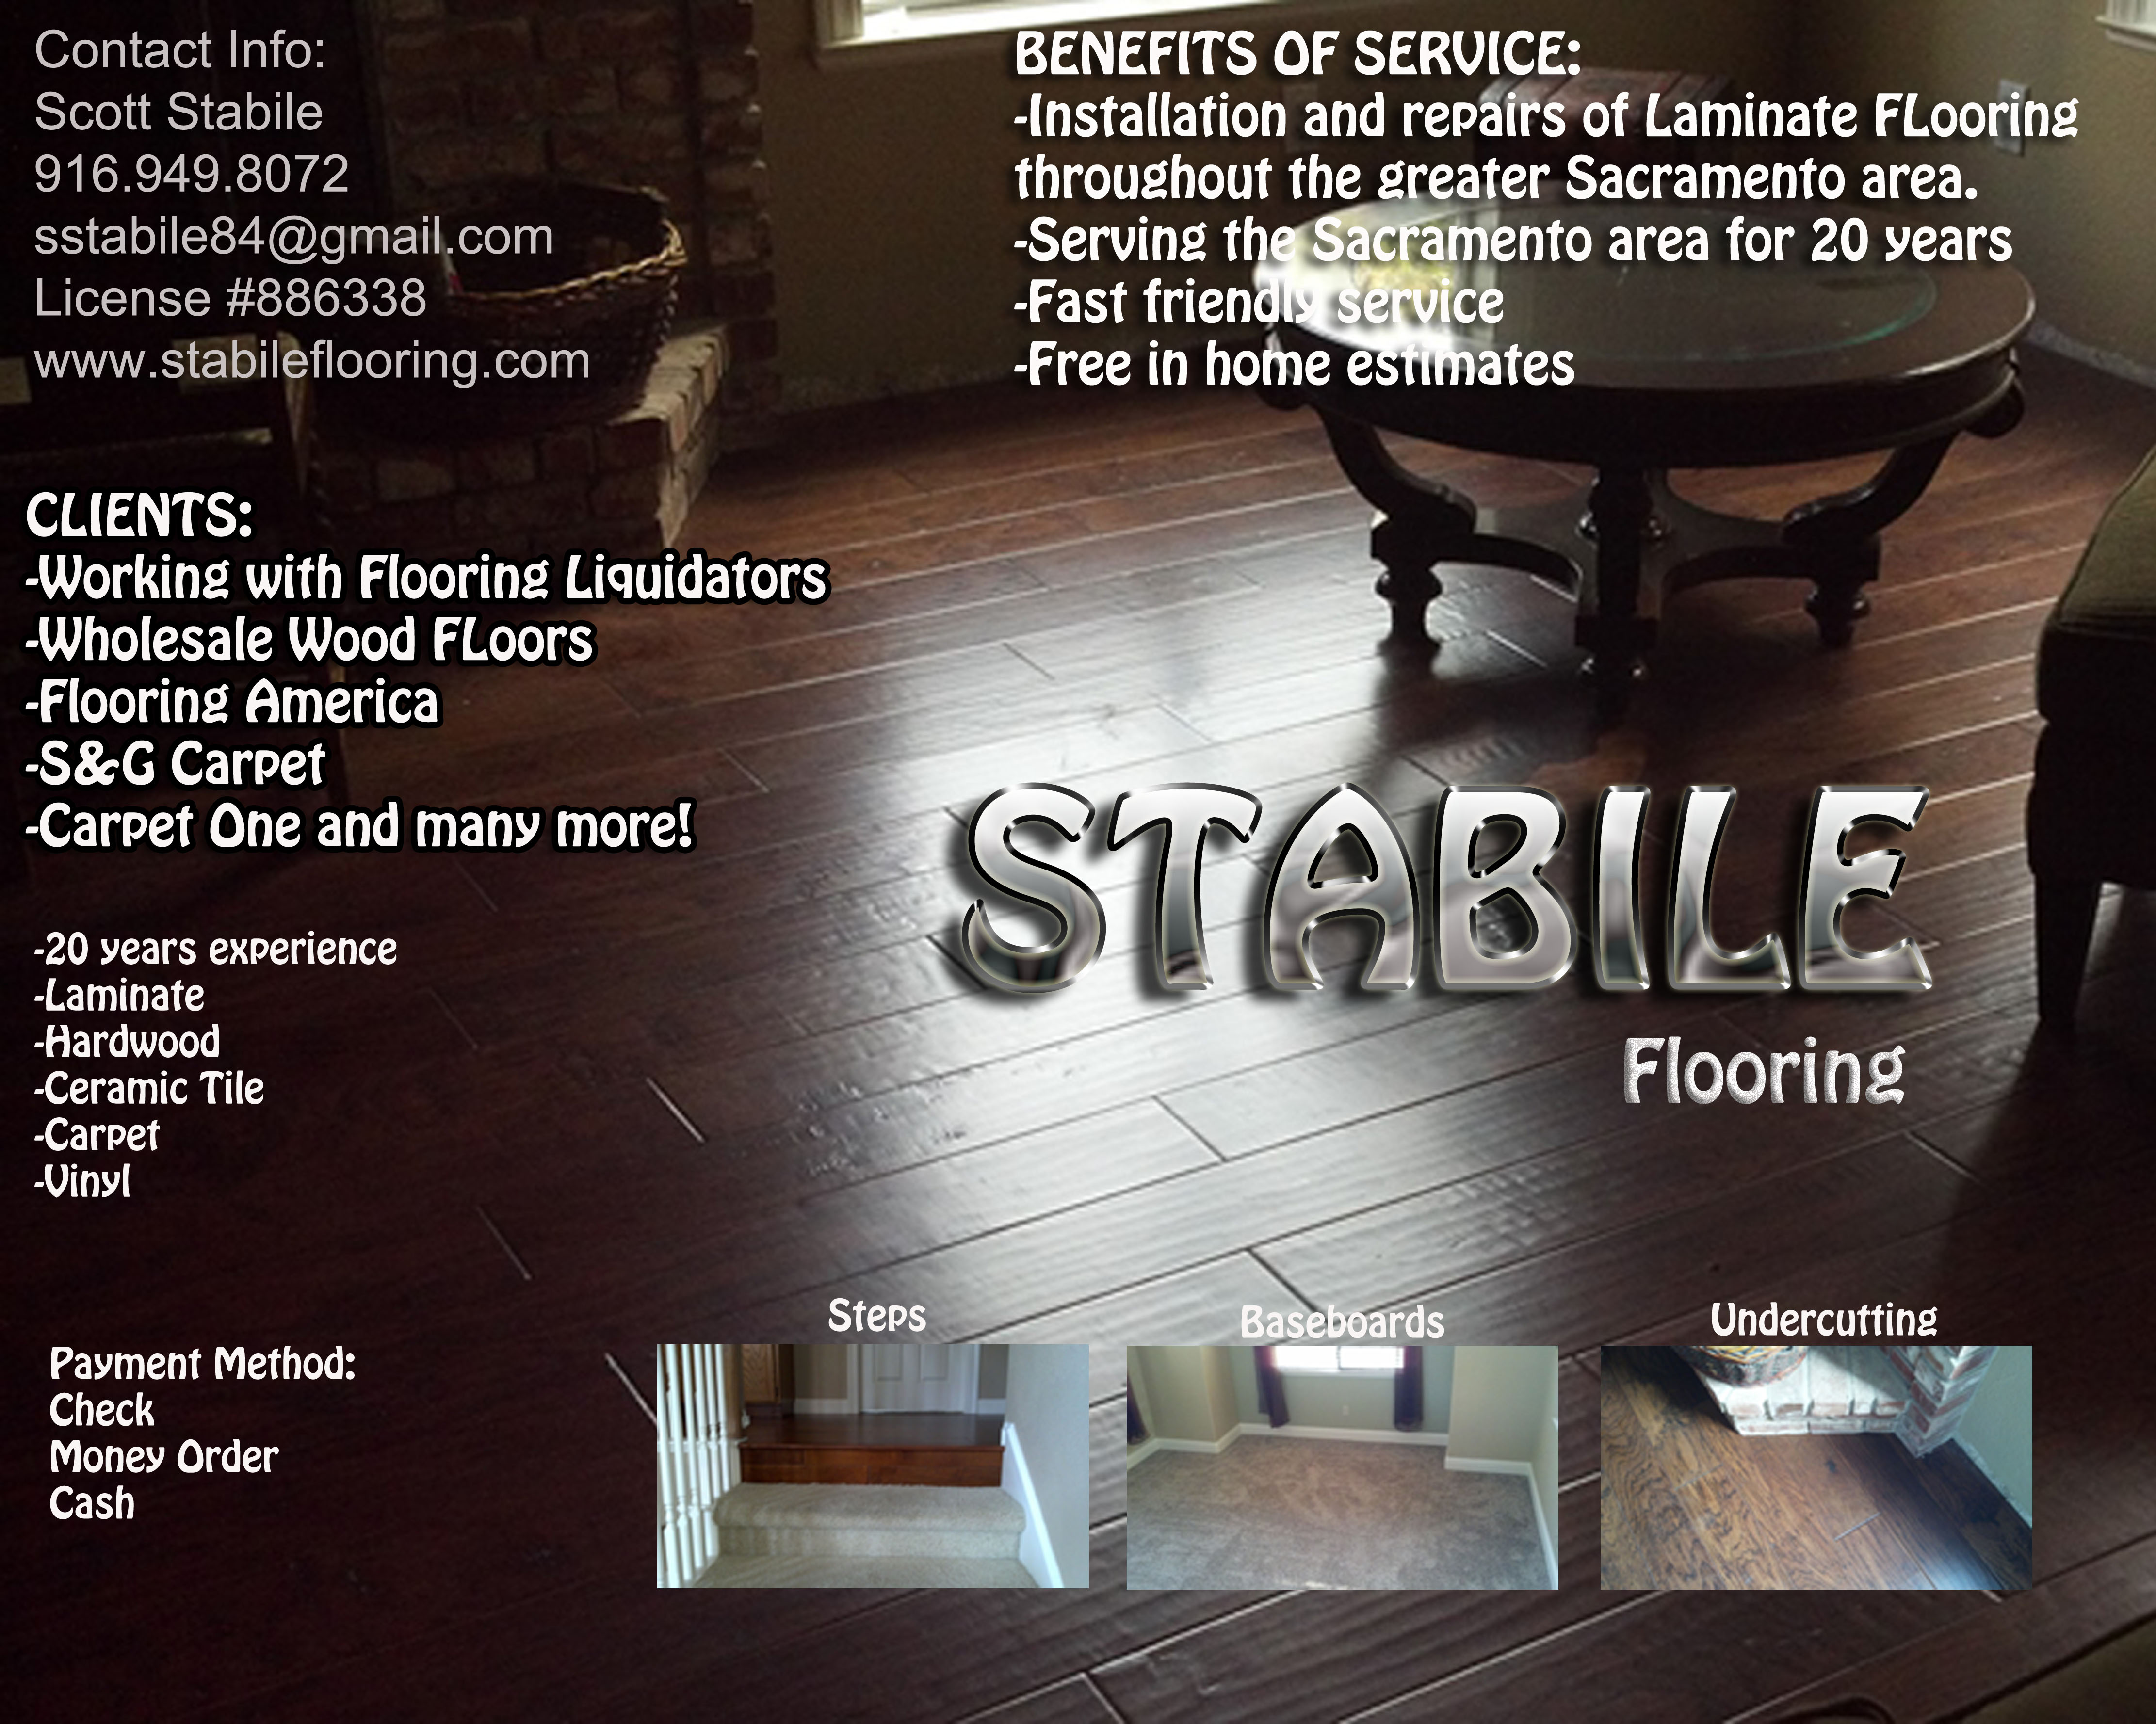 stabile flooring quality wood flooring installation floor industry i provide high quality yet affordable hardwood and laminate floors with acute attention to detail state of the art equipment